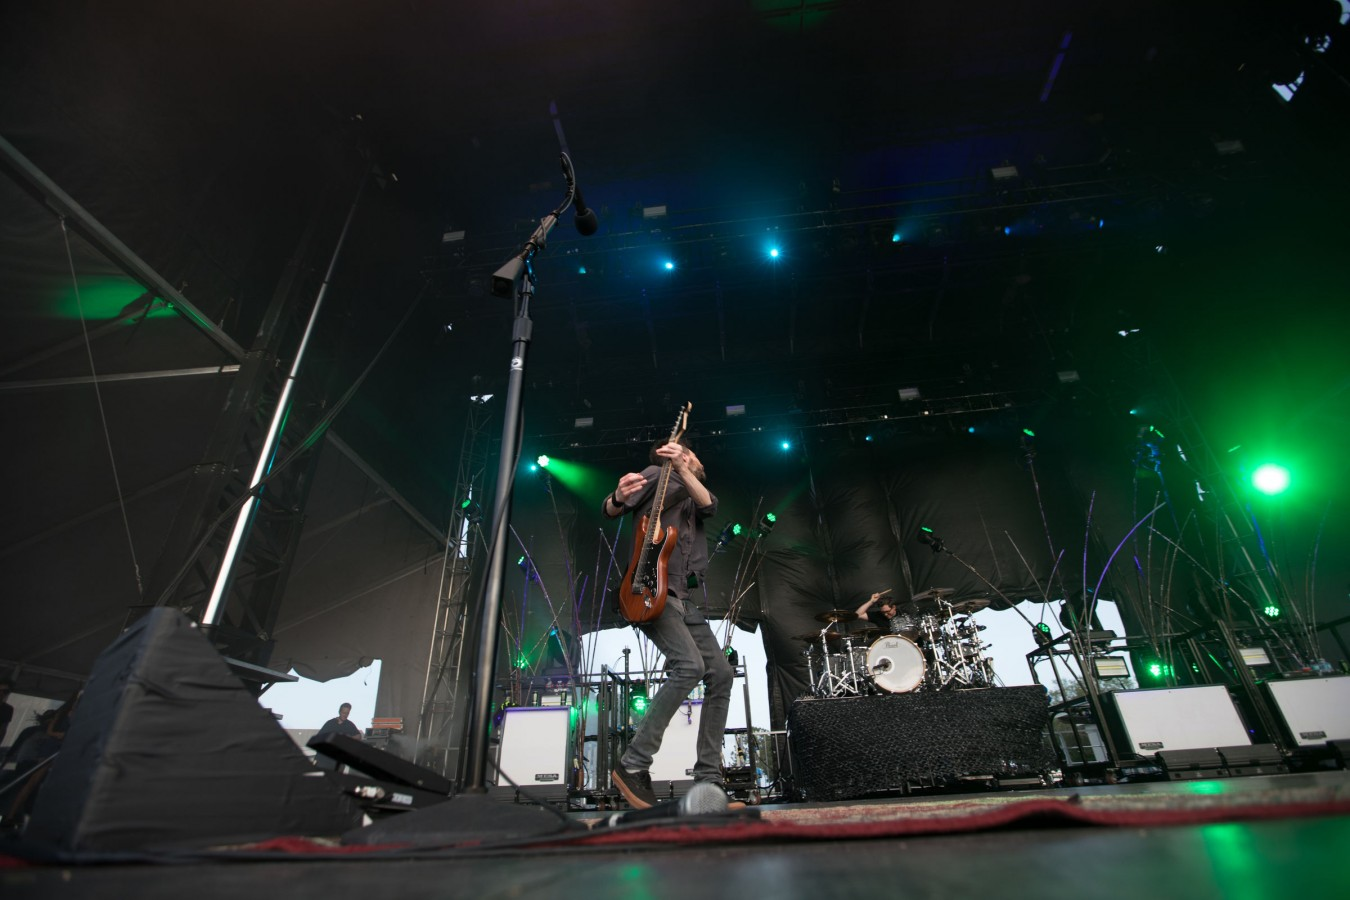 Chevelle performing at Rockville in Jacksonville Florida